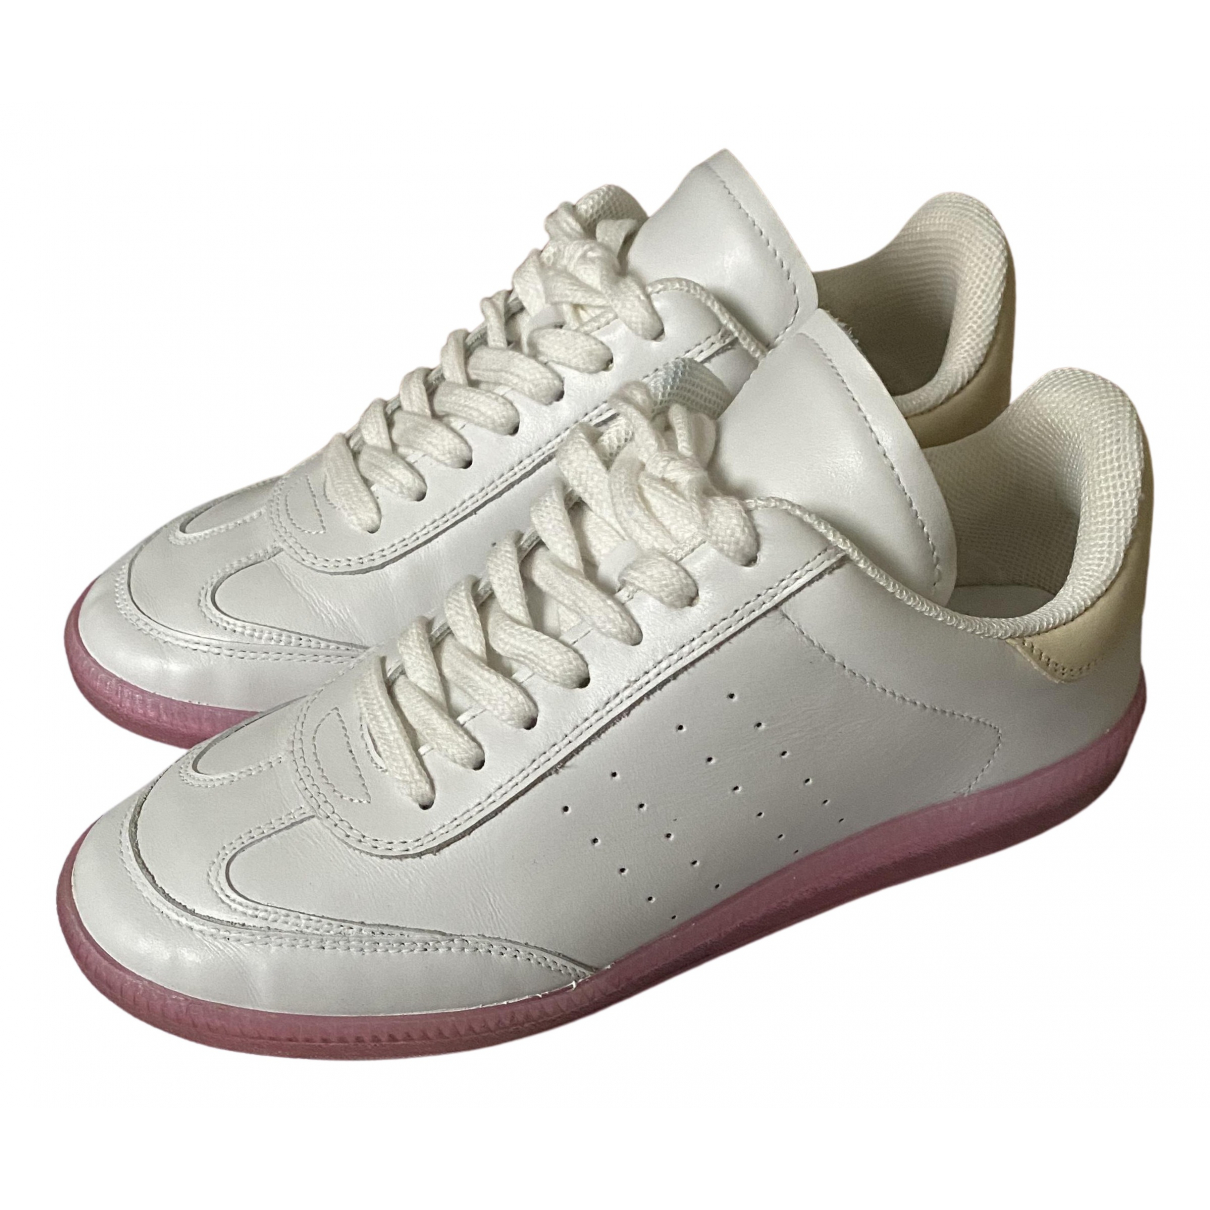 Isabel Marant N White Leather Trainers for Women 37 EU